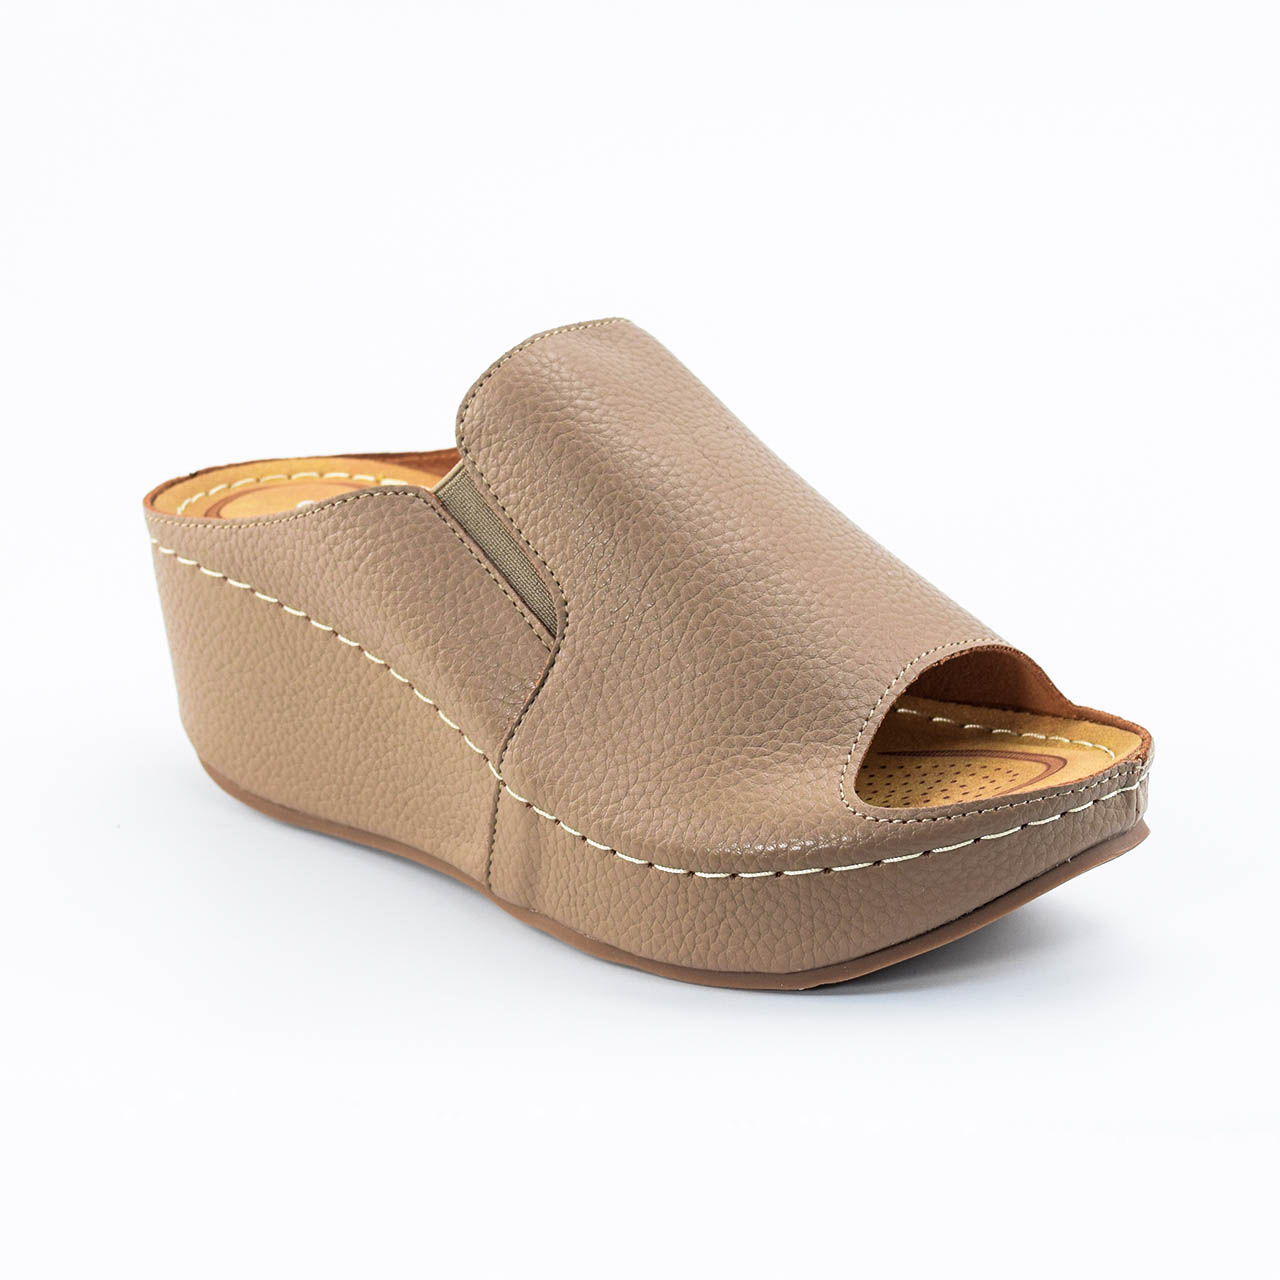 Tiana Wedges in Khaki